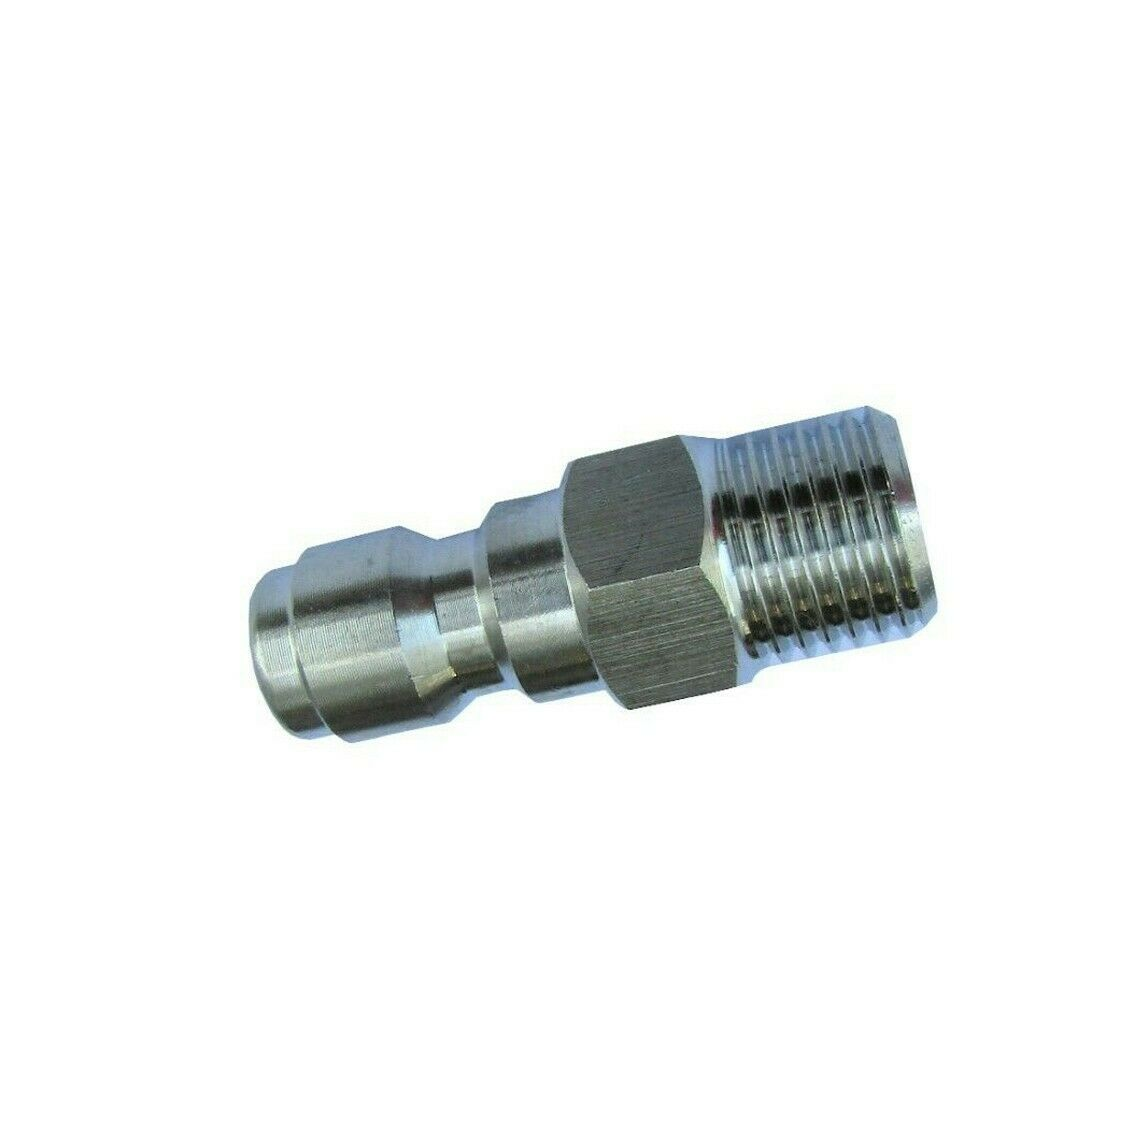 1x Stainless Steel Compact Quick Release Snow Foam Lance Adapter 1/4 Inch BSP